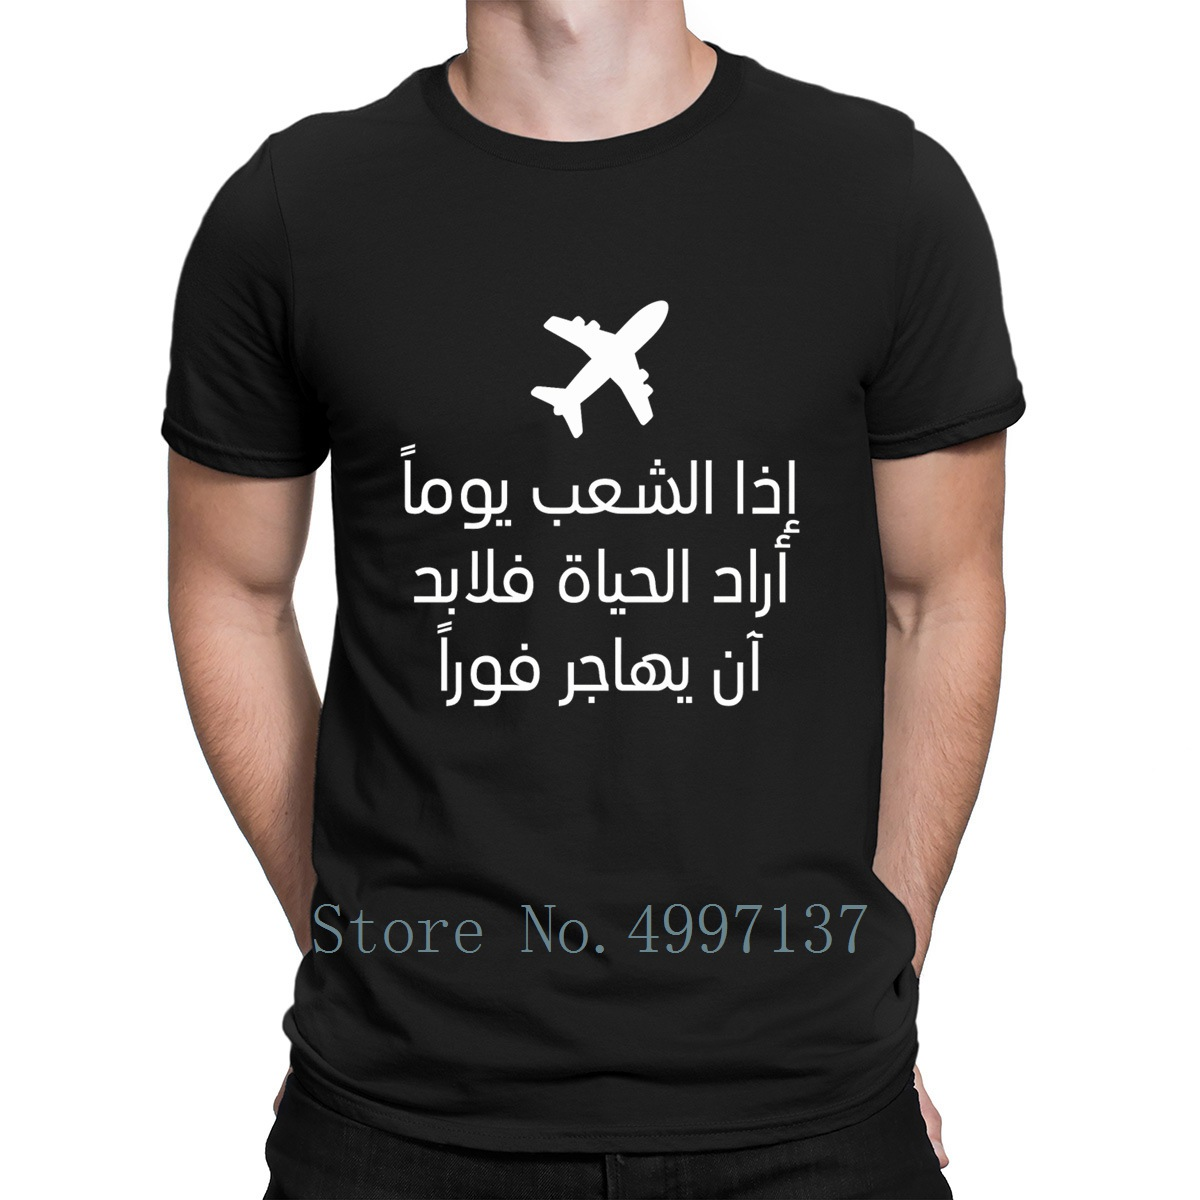 Arabic Sarcastic Calligraphy T Shirt Cotton Homme Anti-Wrinkle S-3xl Spring  Comical Printed Normal Shirt